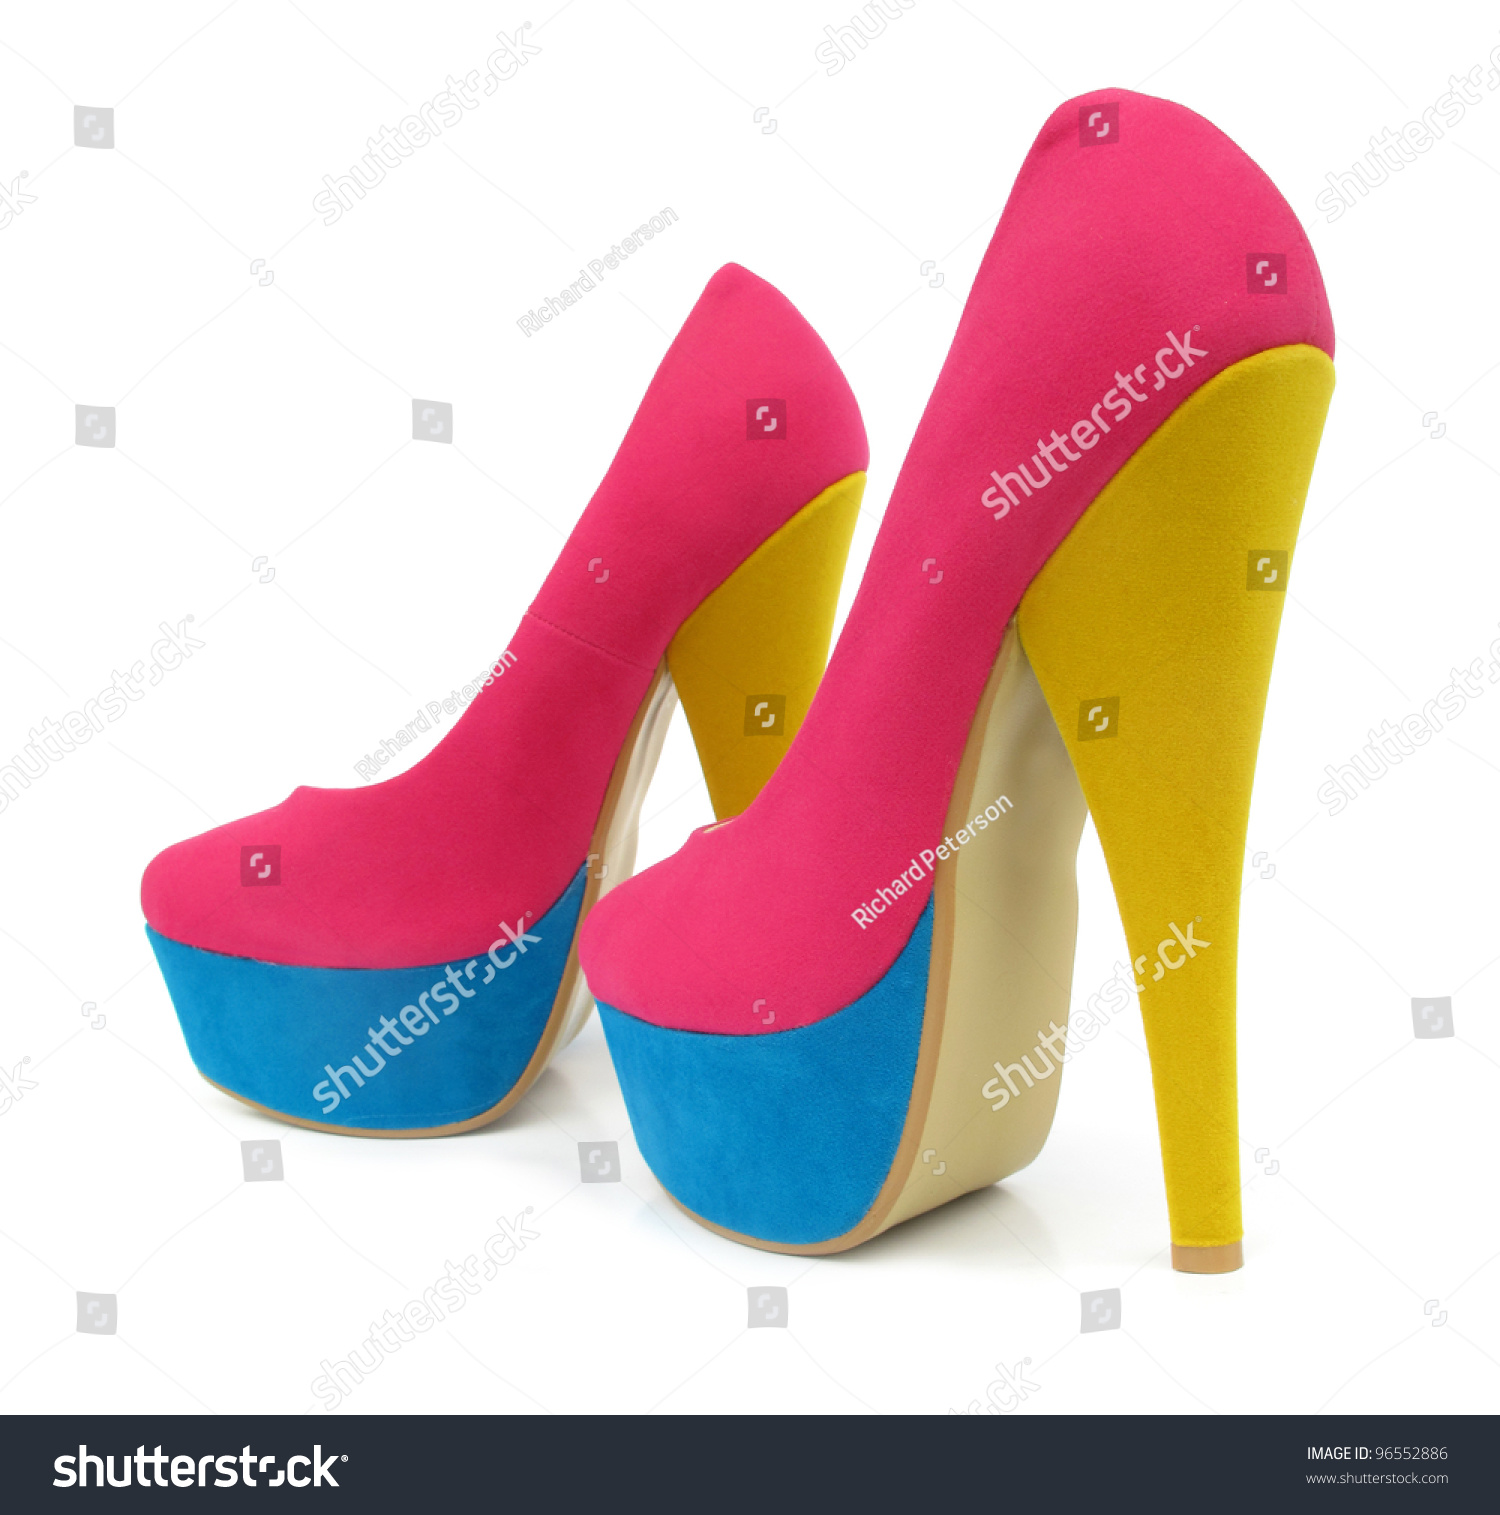 Pink Blue Yellow Colorful High Heels Stock Photo 96552886 ...